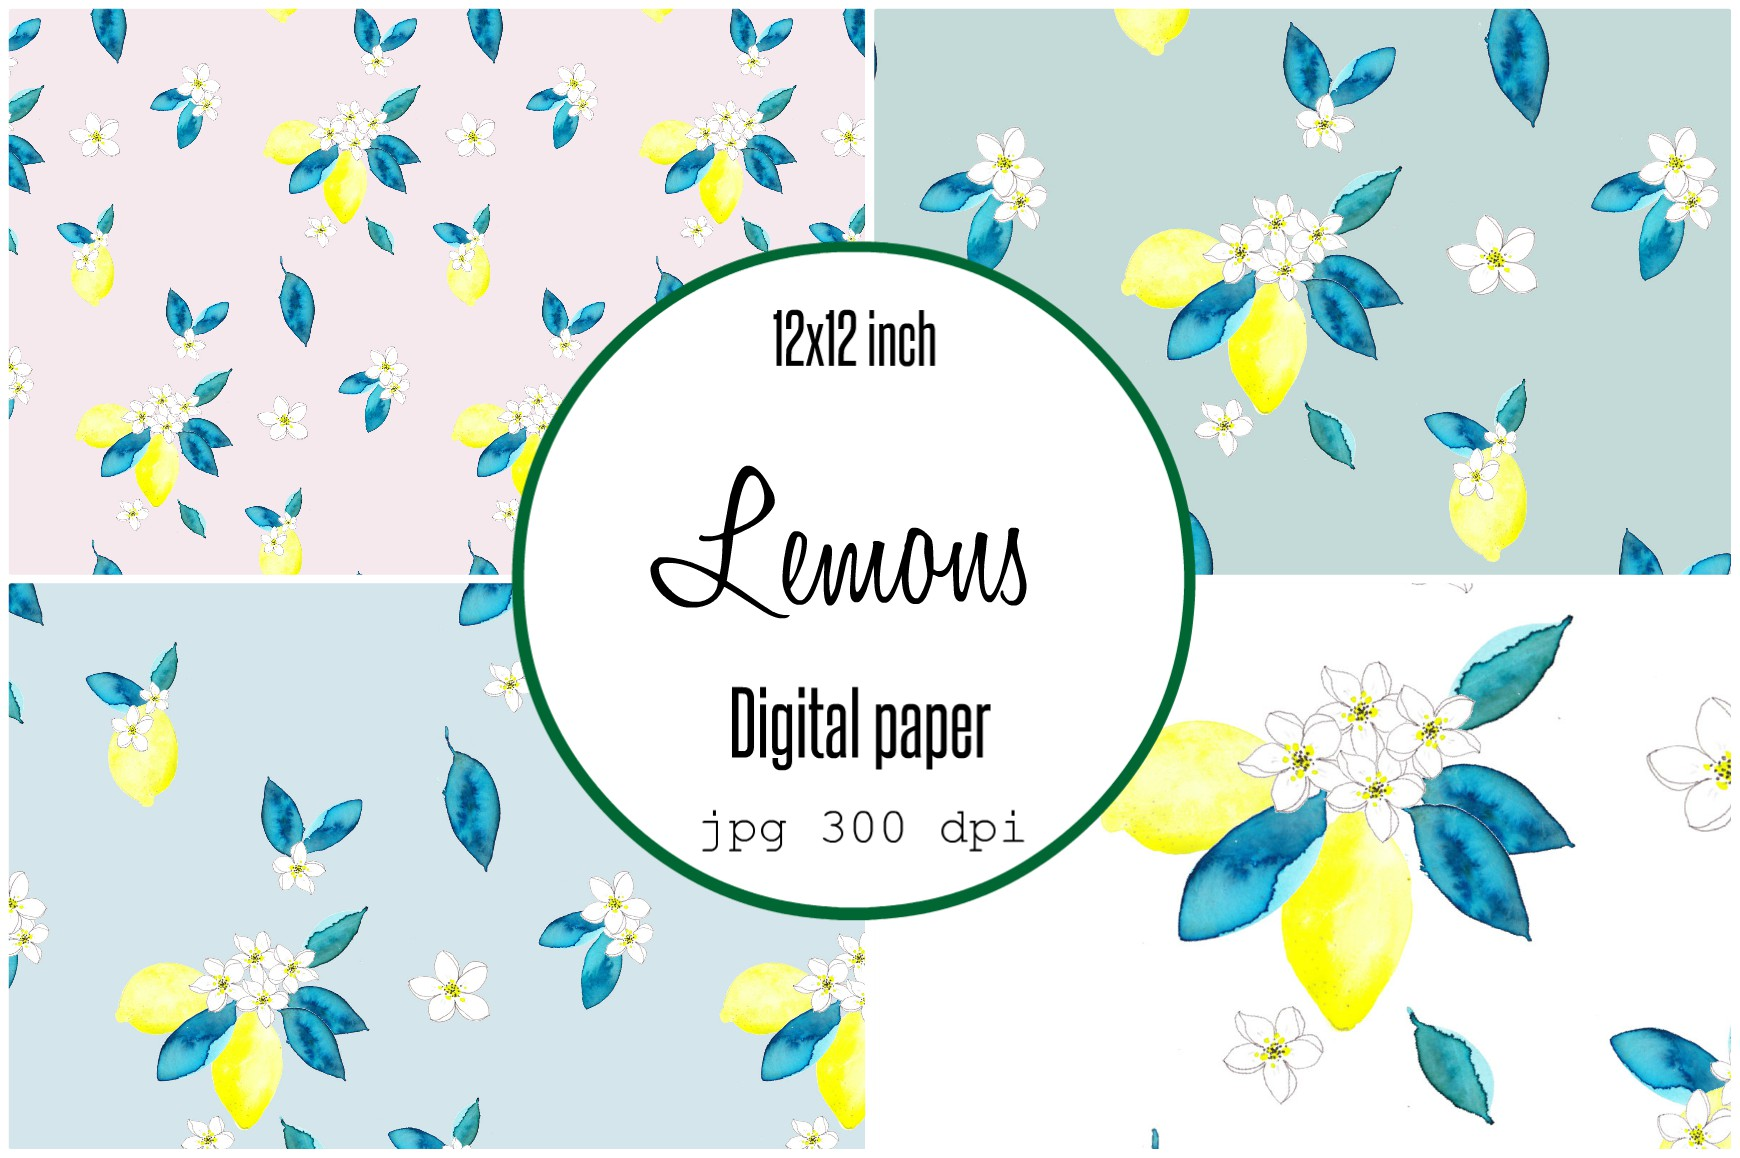 Download Free Digital Paper Watercolor Lemons Graphic By Anines Atelier for Cricut Explore, Silhouette and other cutting machines.